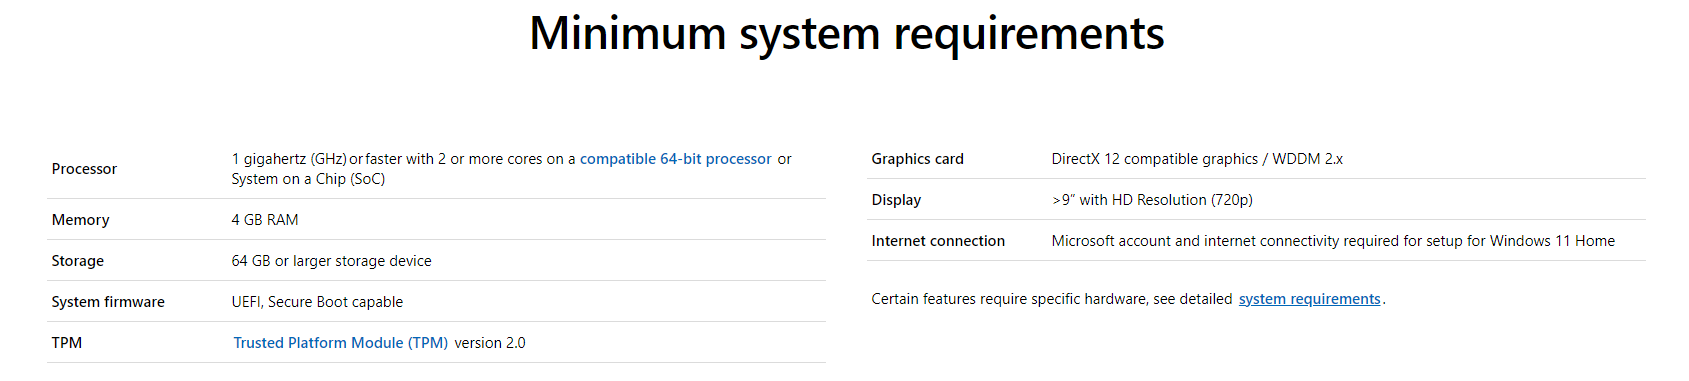 windows11_system_requirements